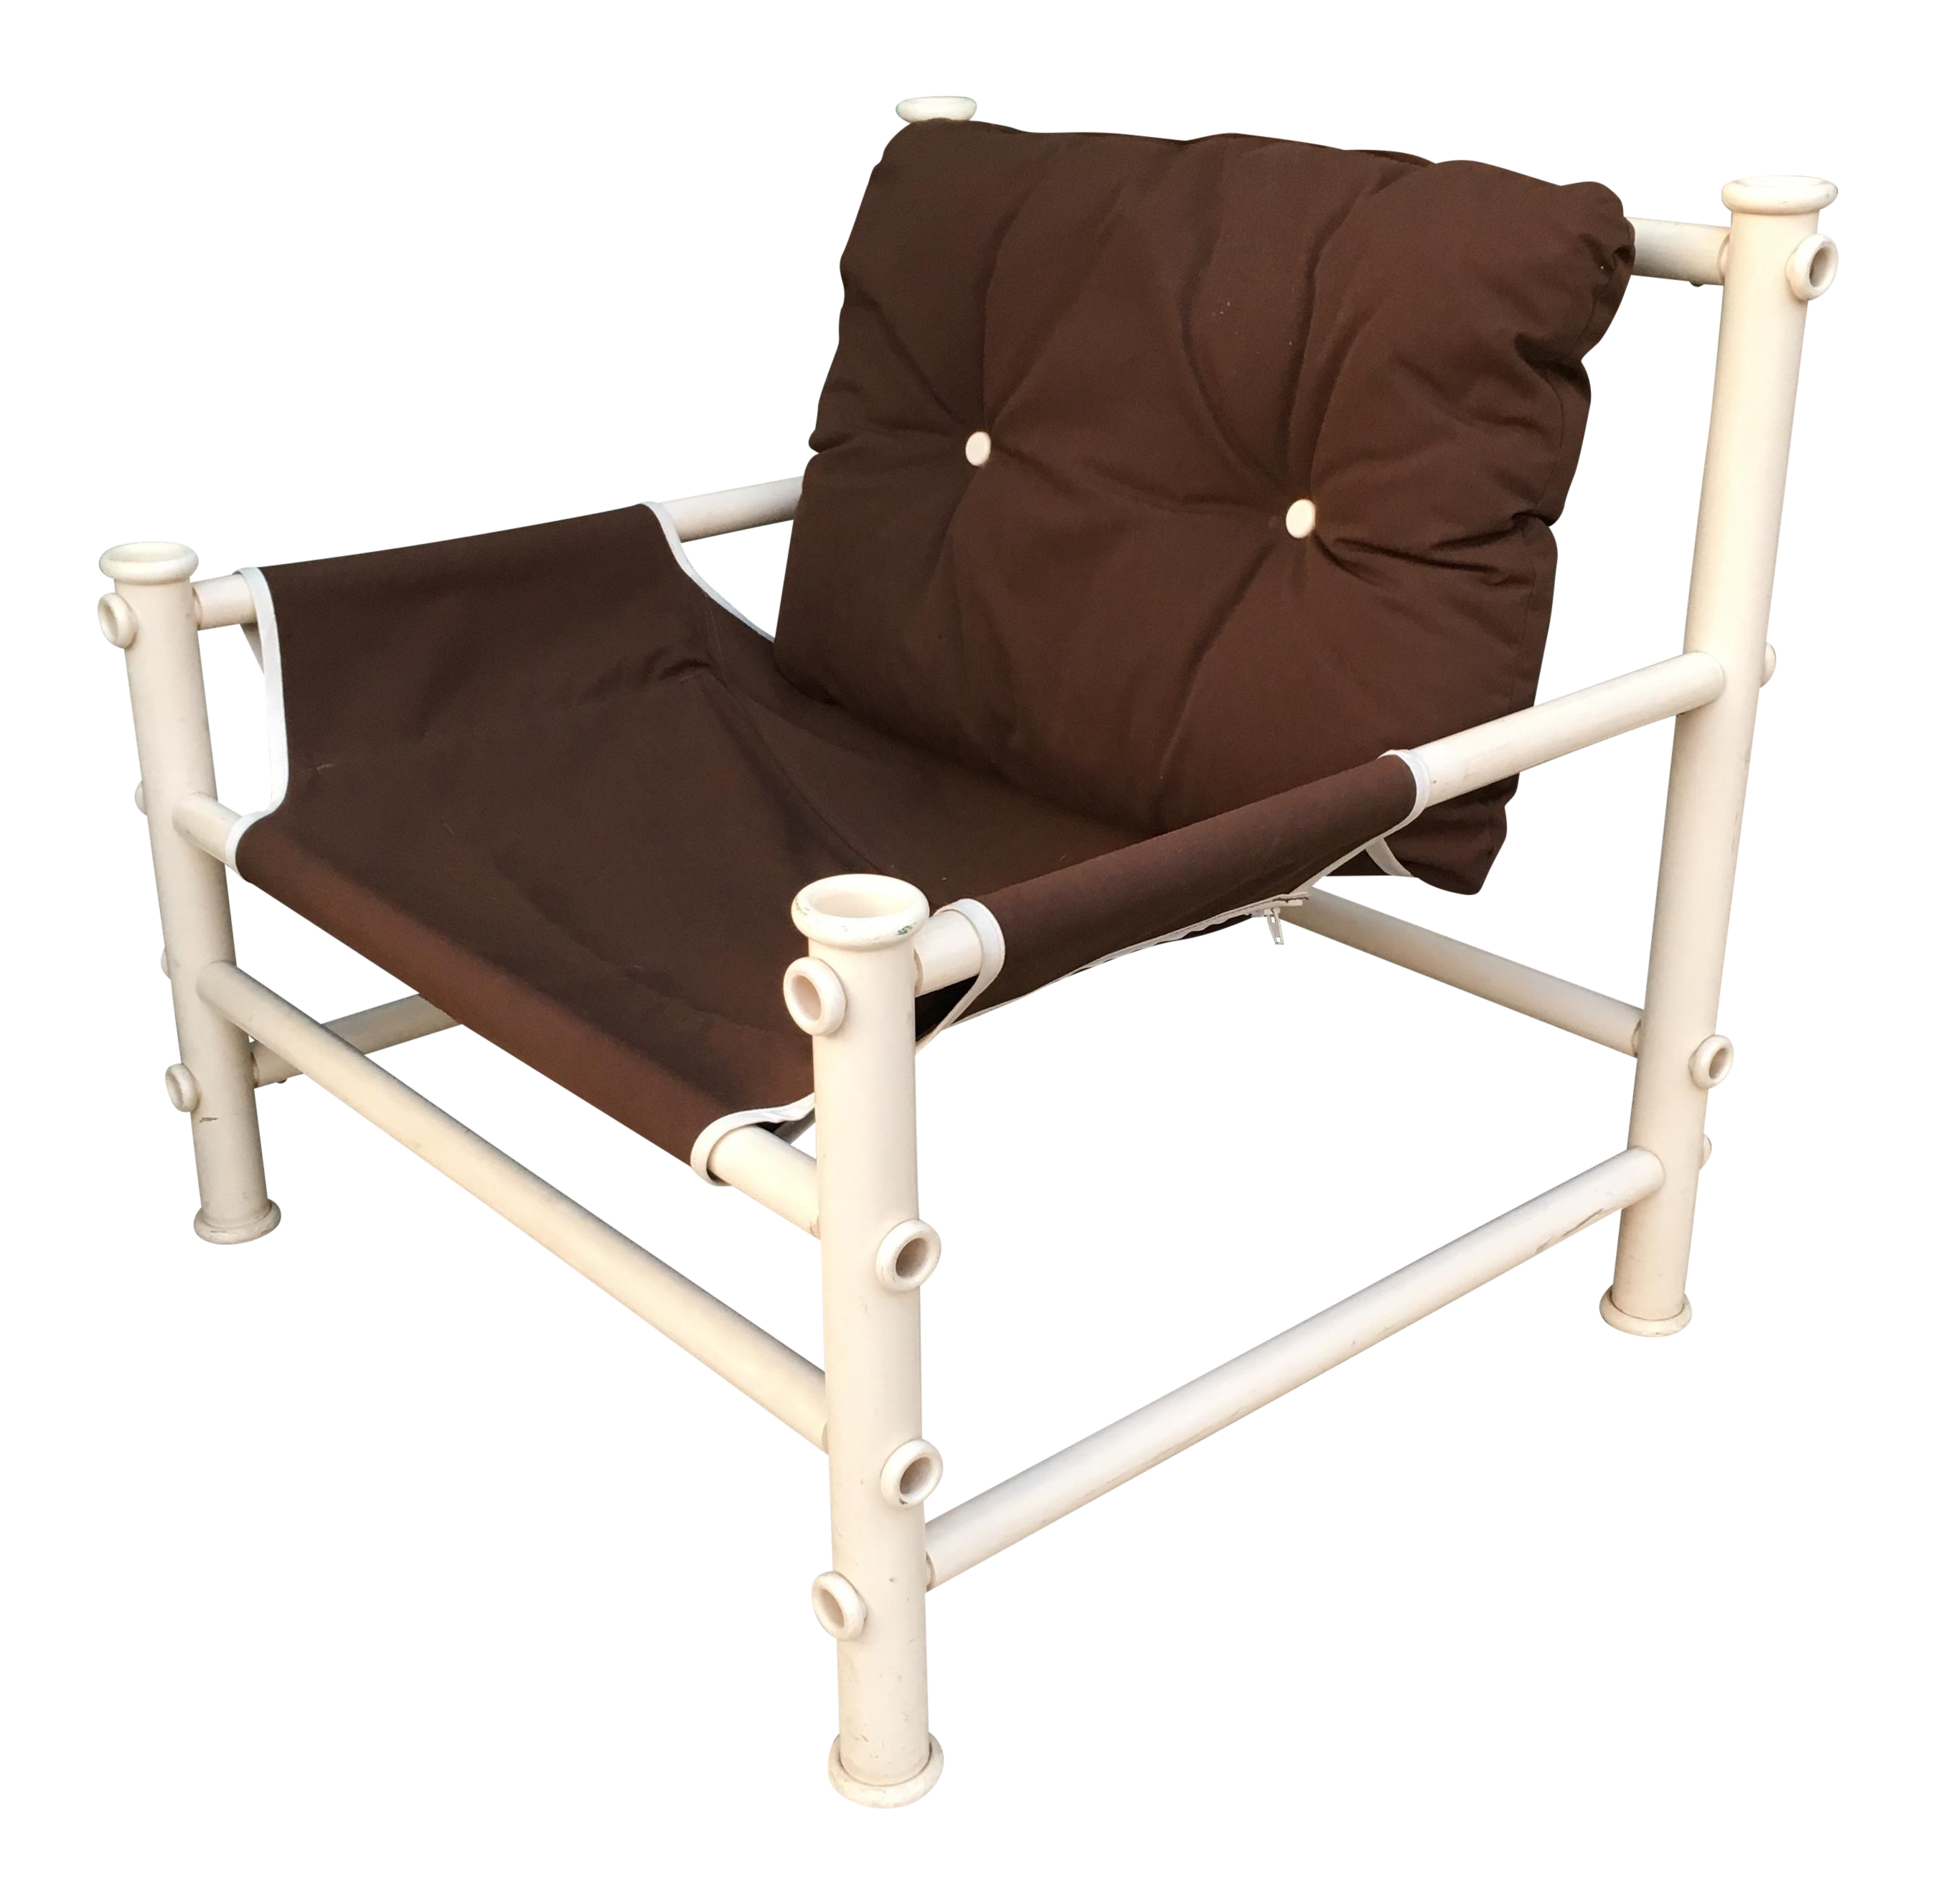 Vintage pvc pipe lounge chair chairish for Pvc pipe lounge chair